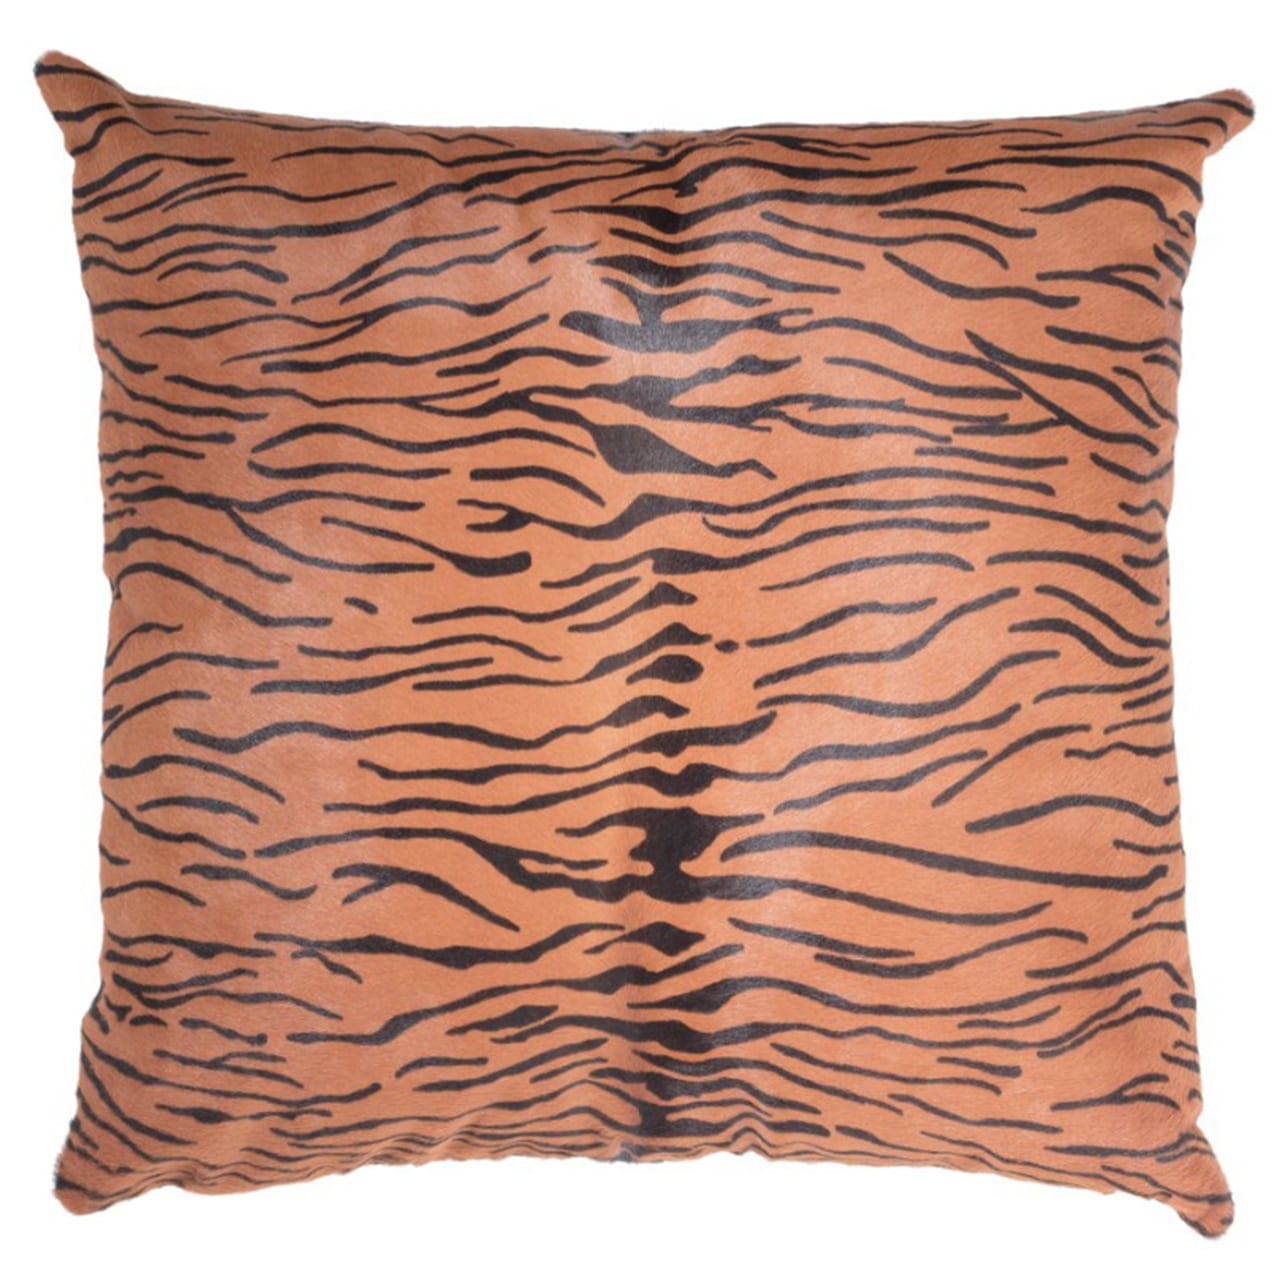 NEW-Cavallino Pillow- Tiger 1010-492- 50x50cm (CPTIG1010492BL5050) - ANVOGG FEEL SHEARLING | ANVOGG